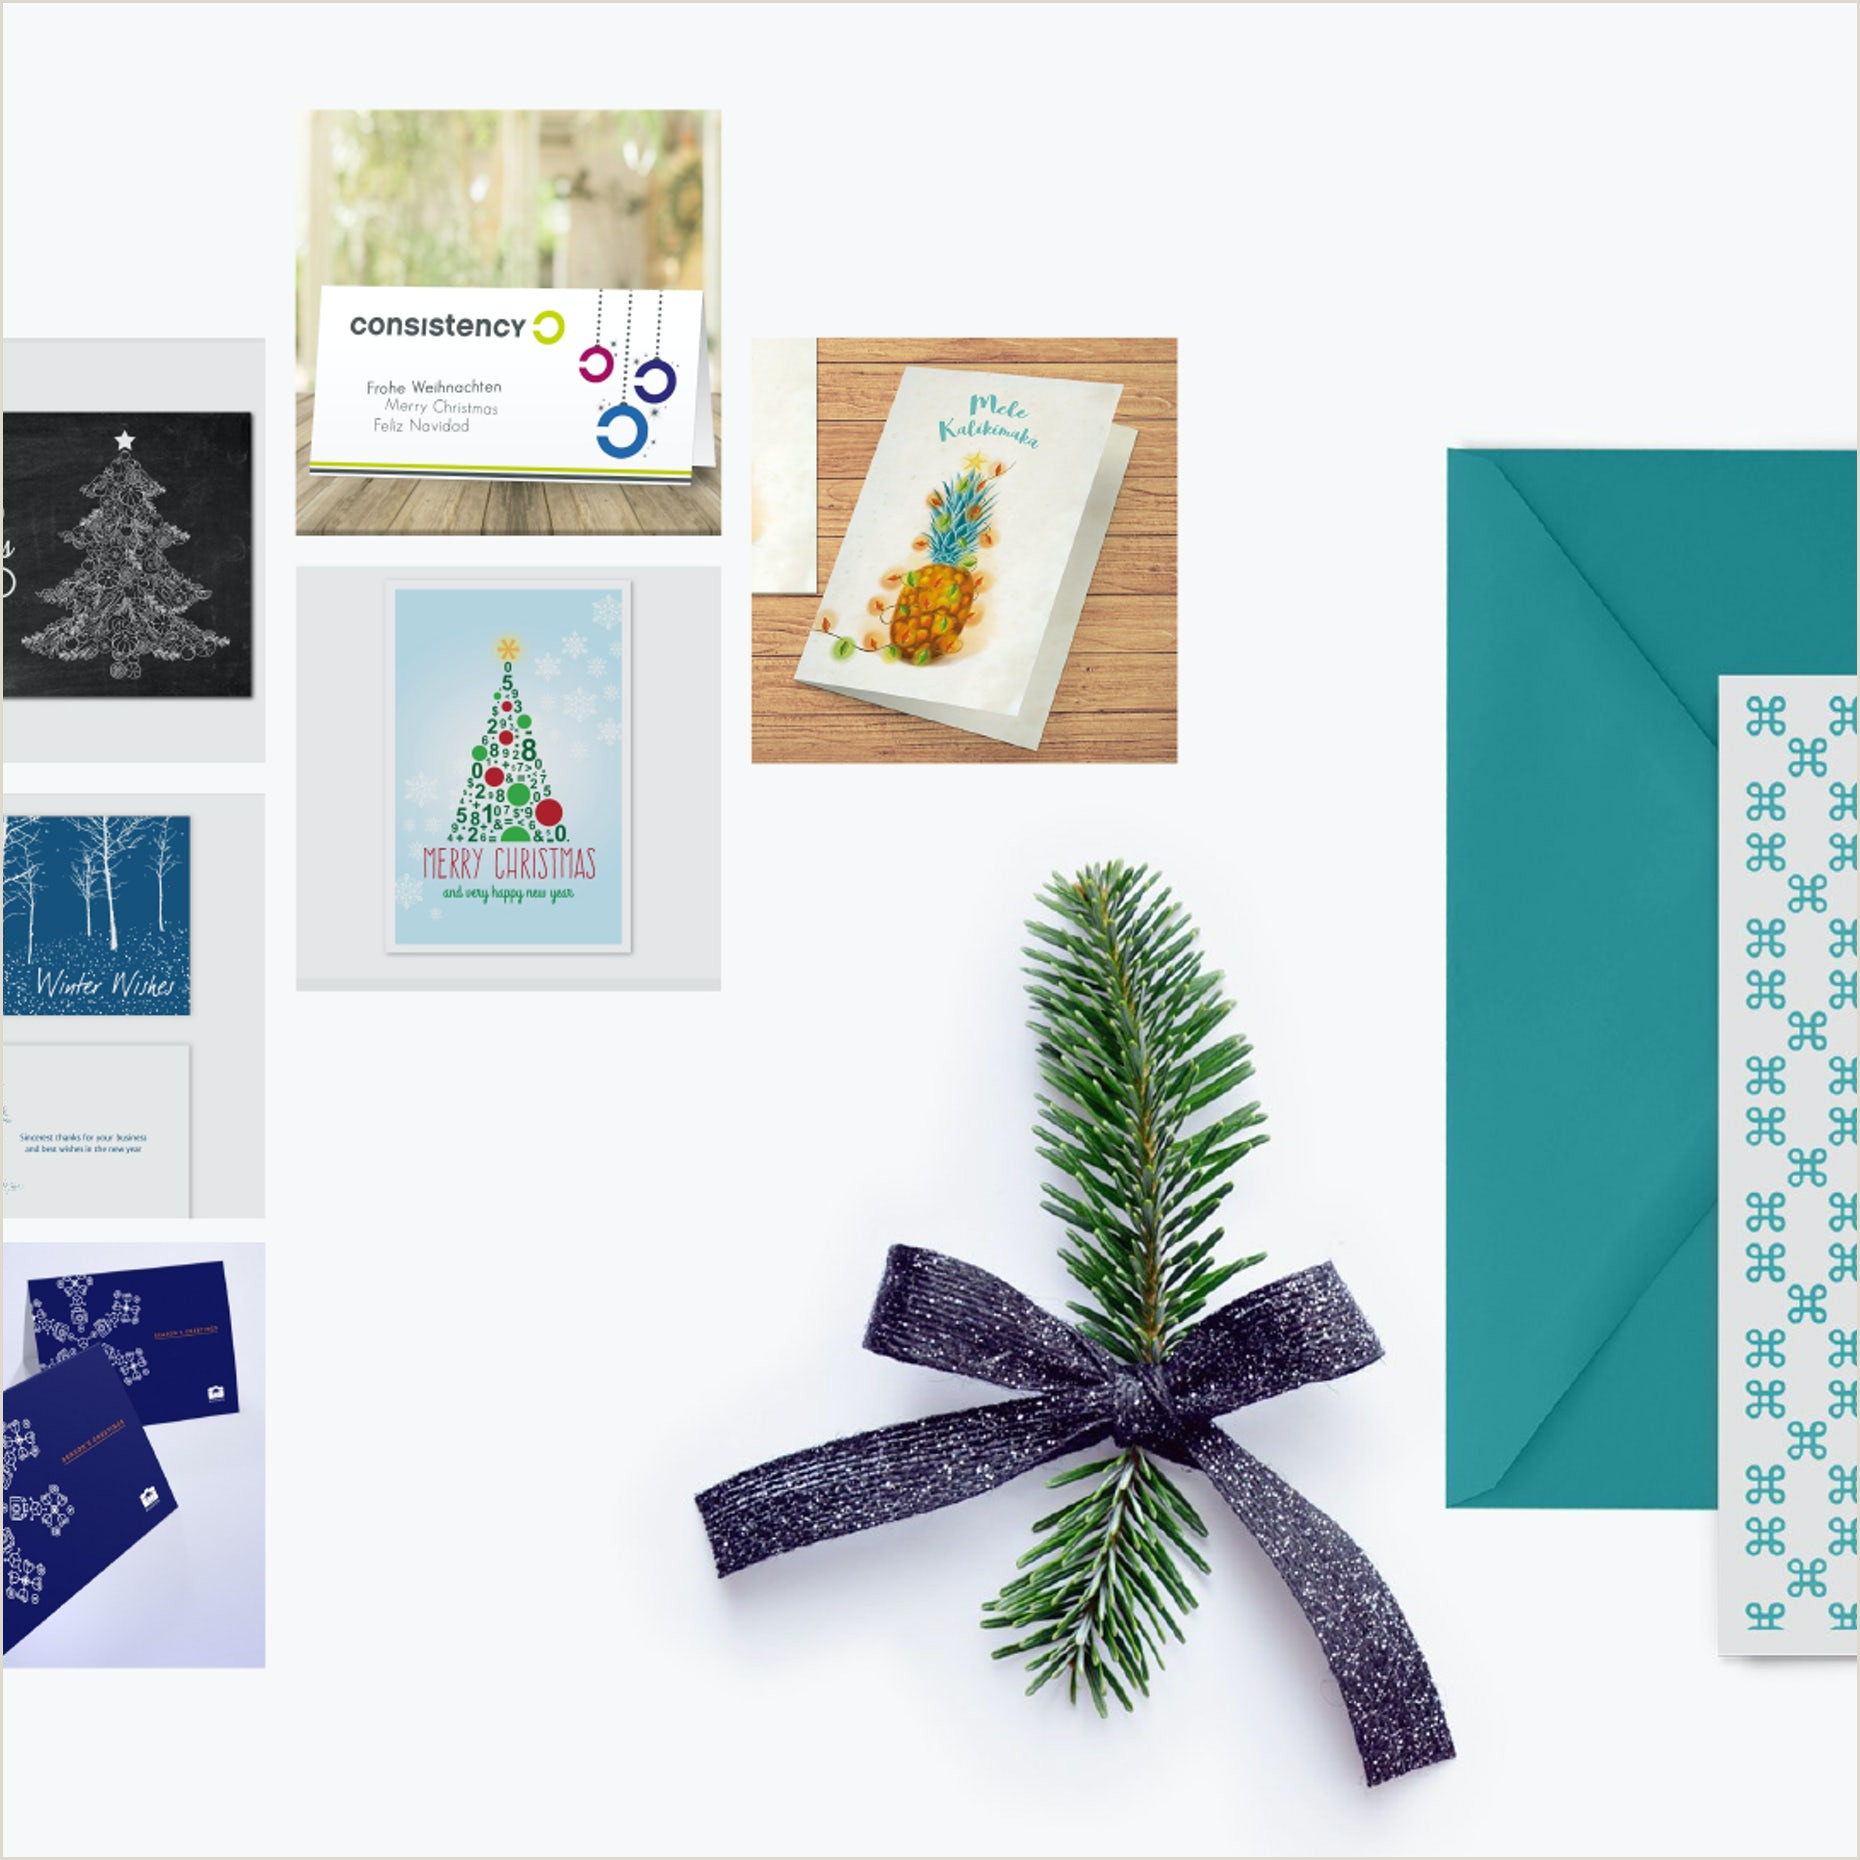 Unique Holiday Cards Business Custom Holiday Cards For Businesses Ideas Inspiration And